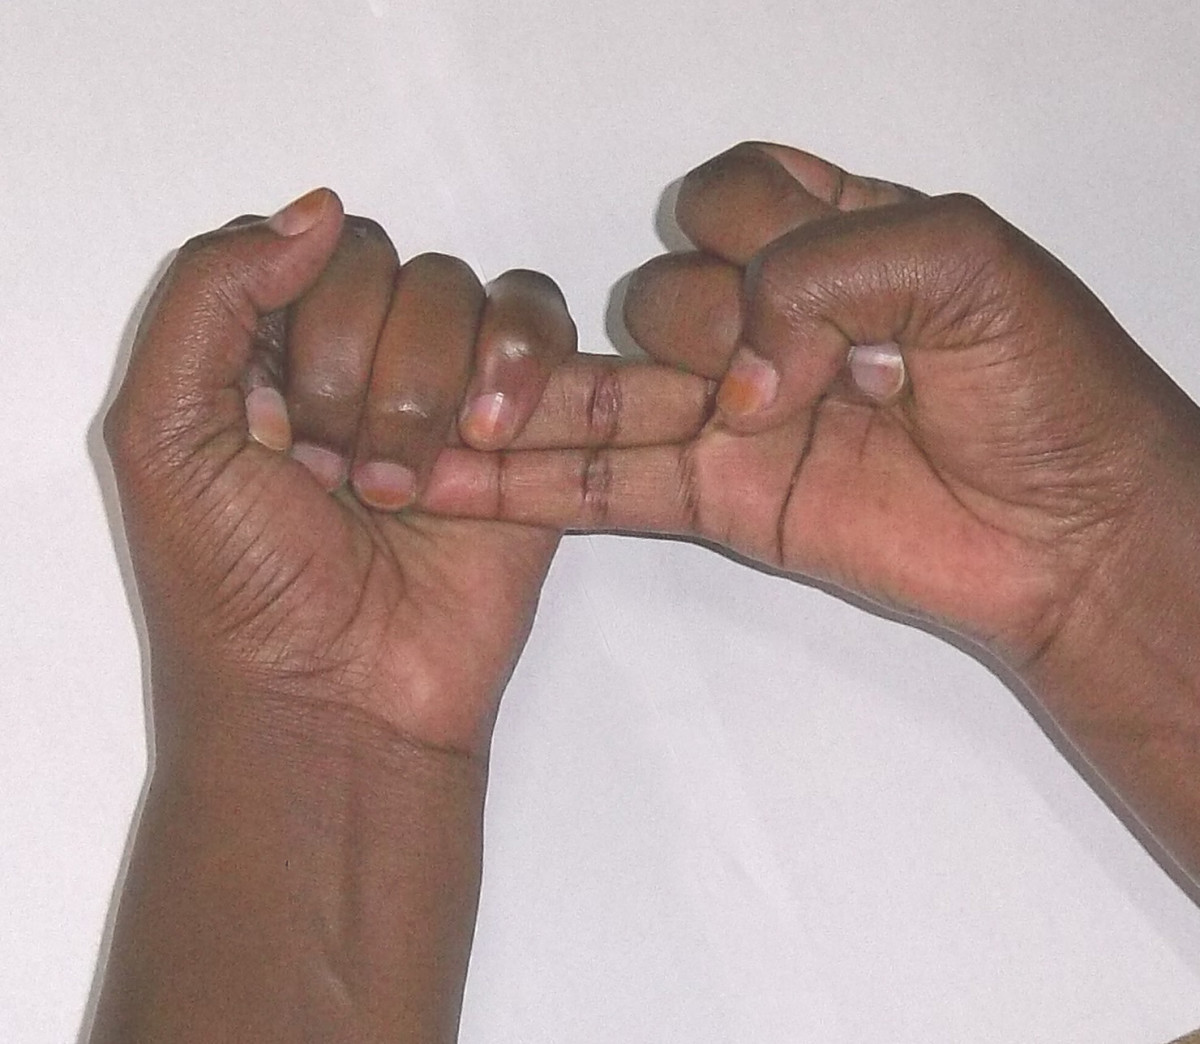 Kikuyu sign language for 7